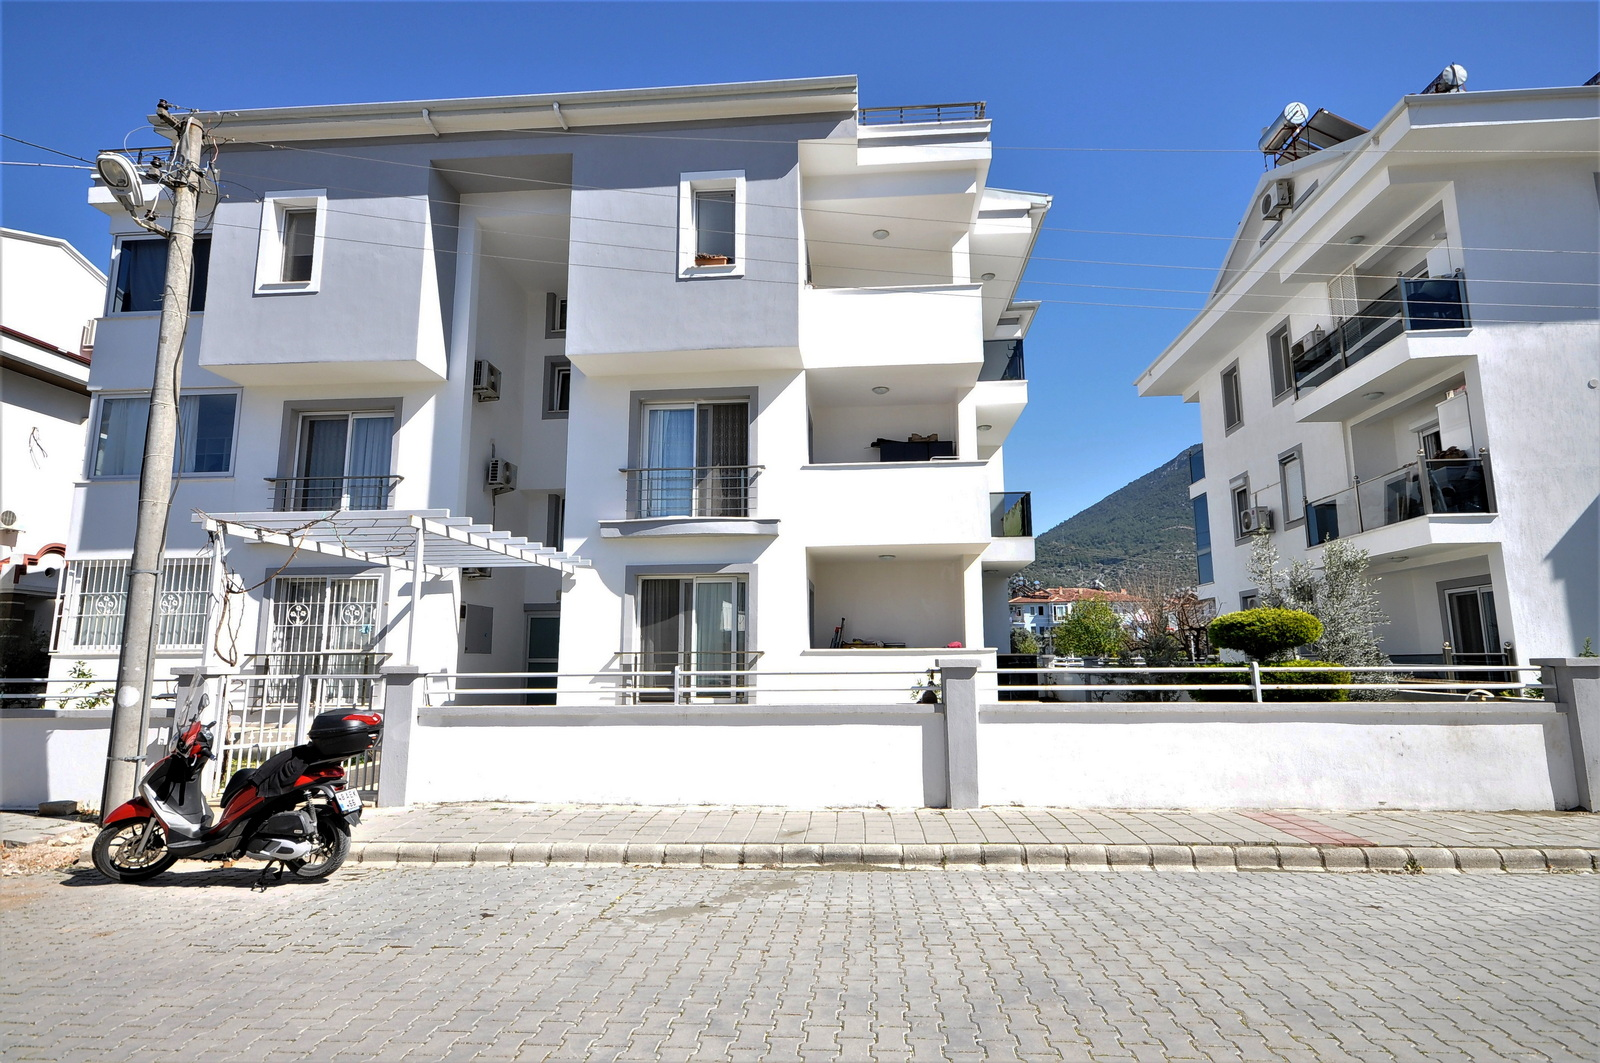 3 Bedroom Ground Floor Apartment For Sale